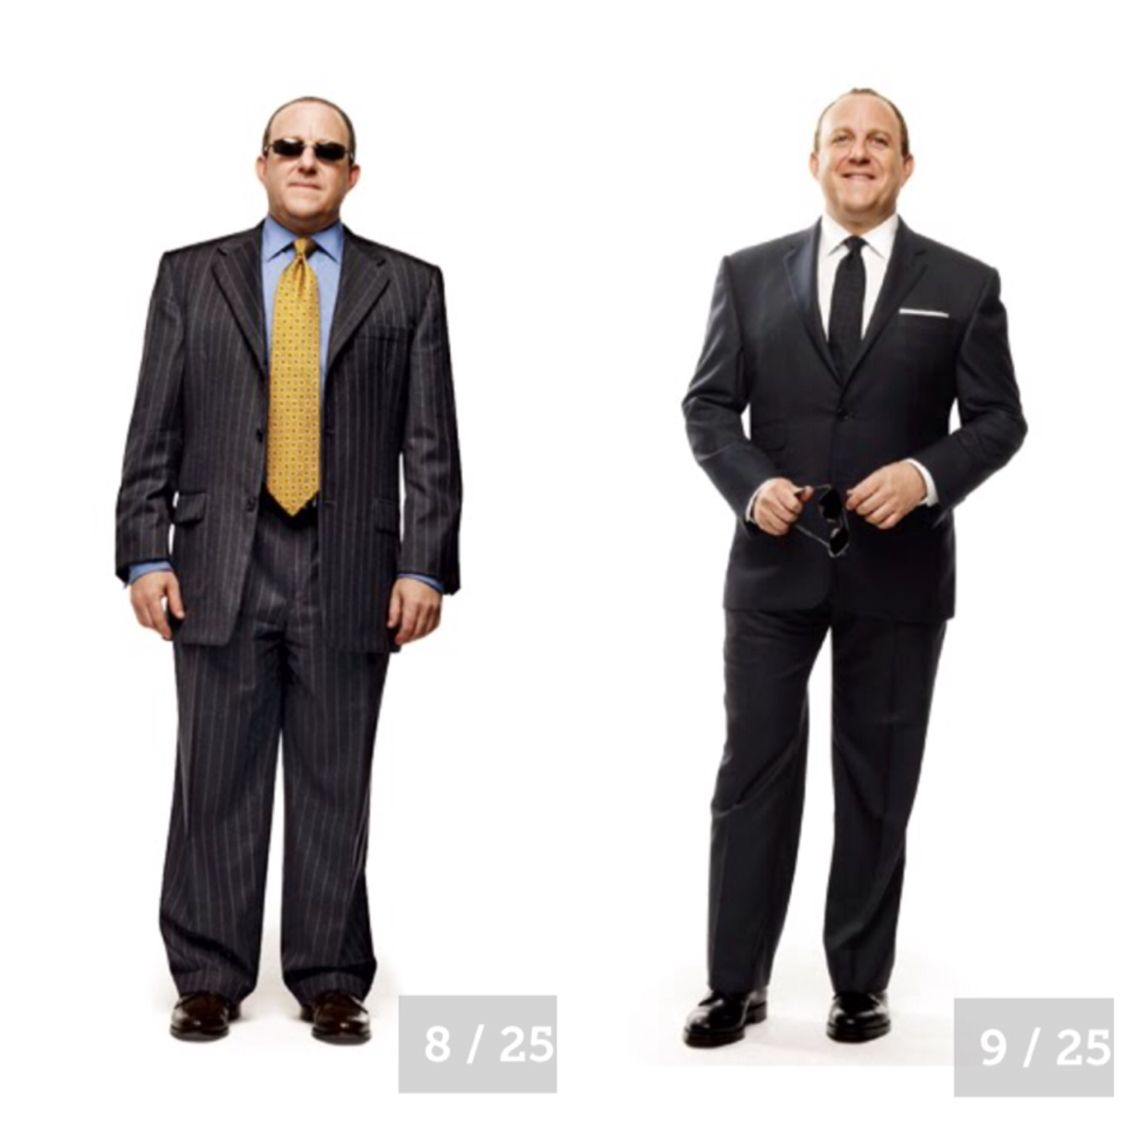 THE RIGHT SUIT FIT